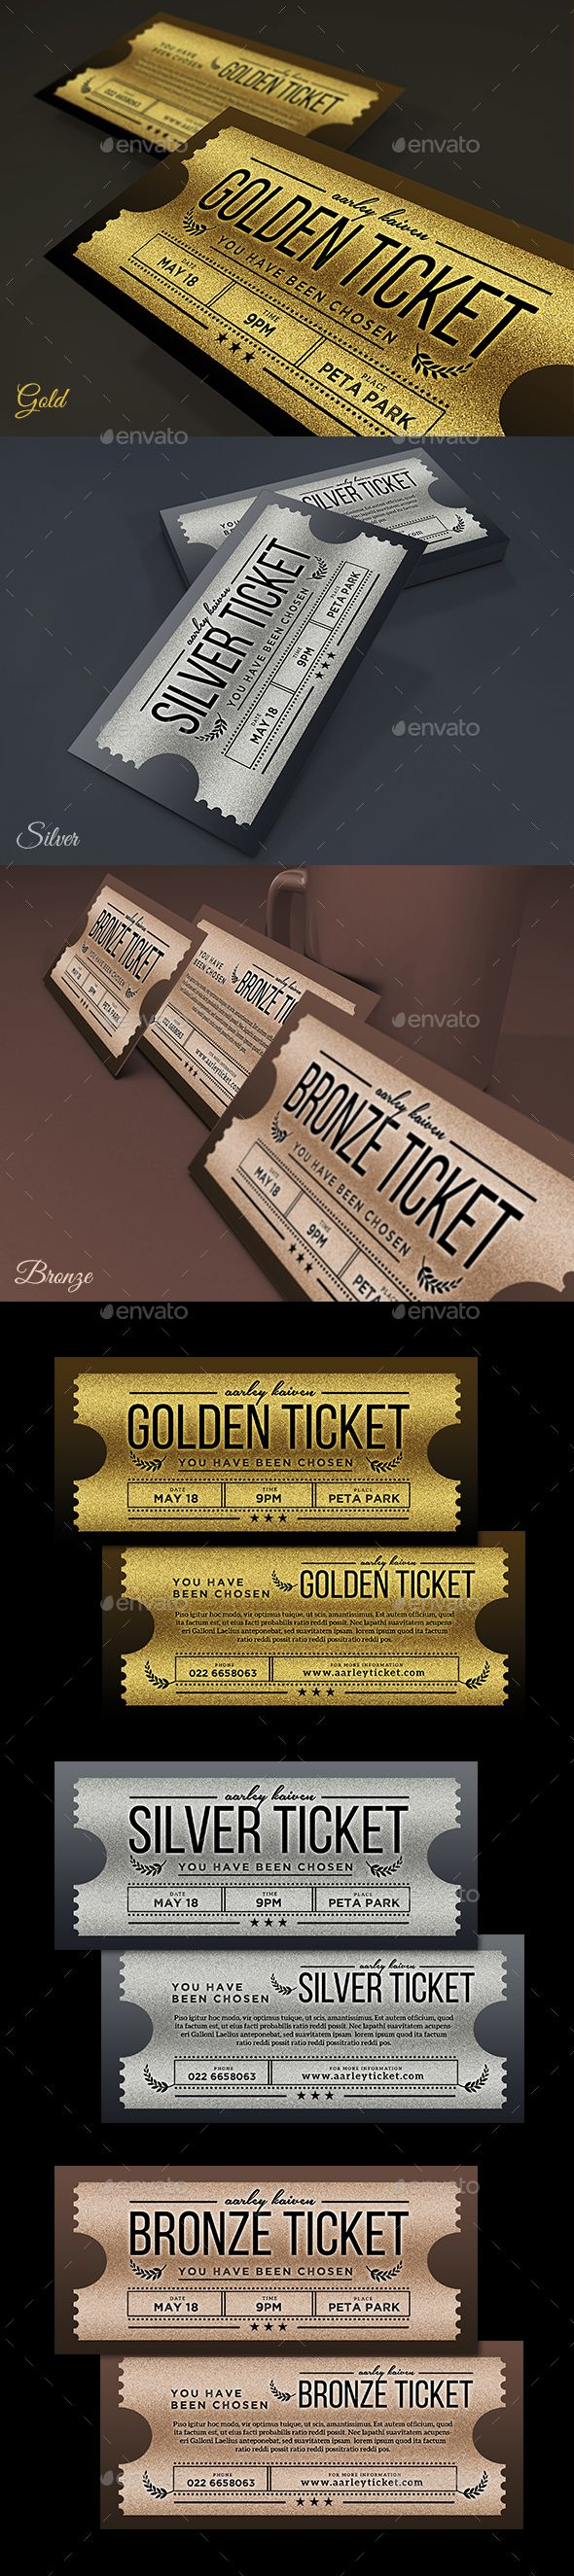 Golden / Silver Ticket Invitation  — PSD Template #company #9.25x4 • Download ➝ https://graphicriver.net/item/golden-silver-ticket-invitation/18200408?ref=pxcr